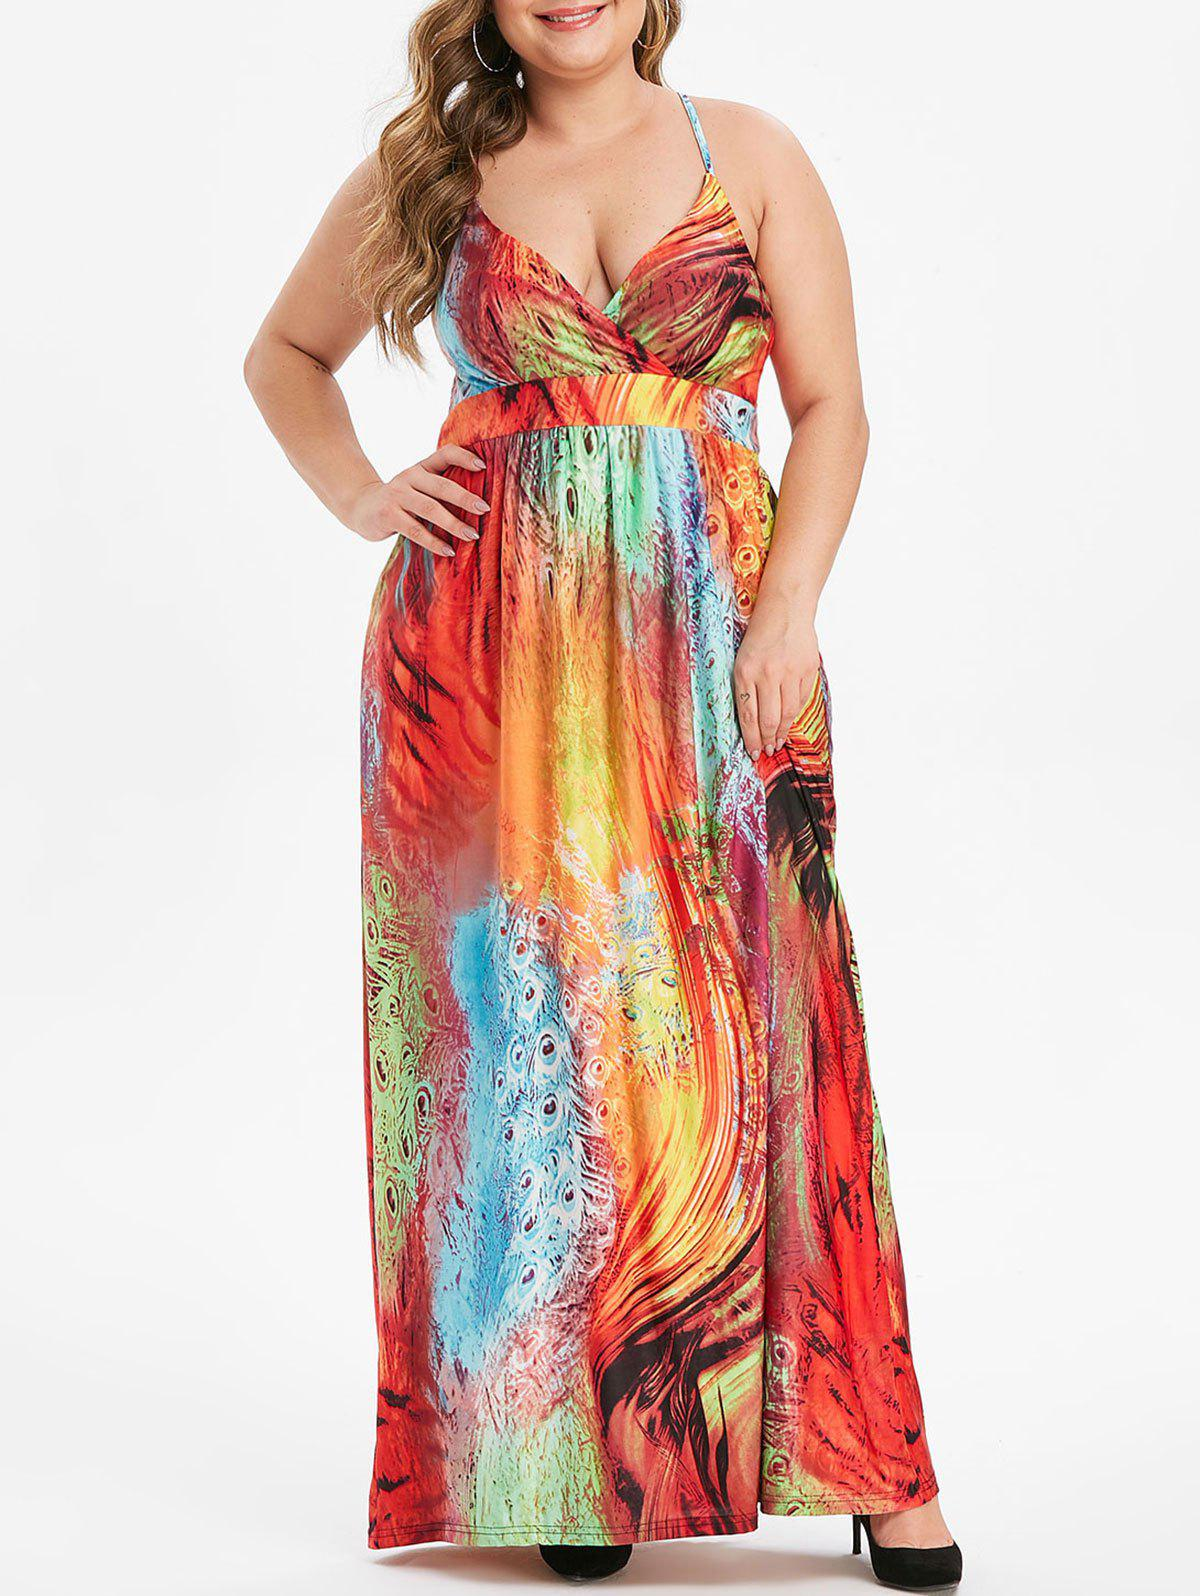 Feather Print Shirred Plus Size Cami Dress - multicolor 6X